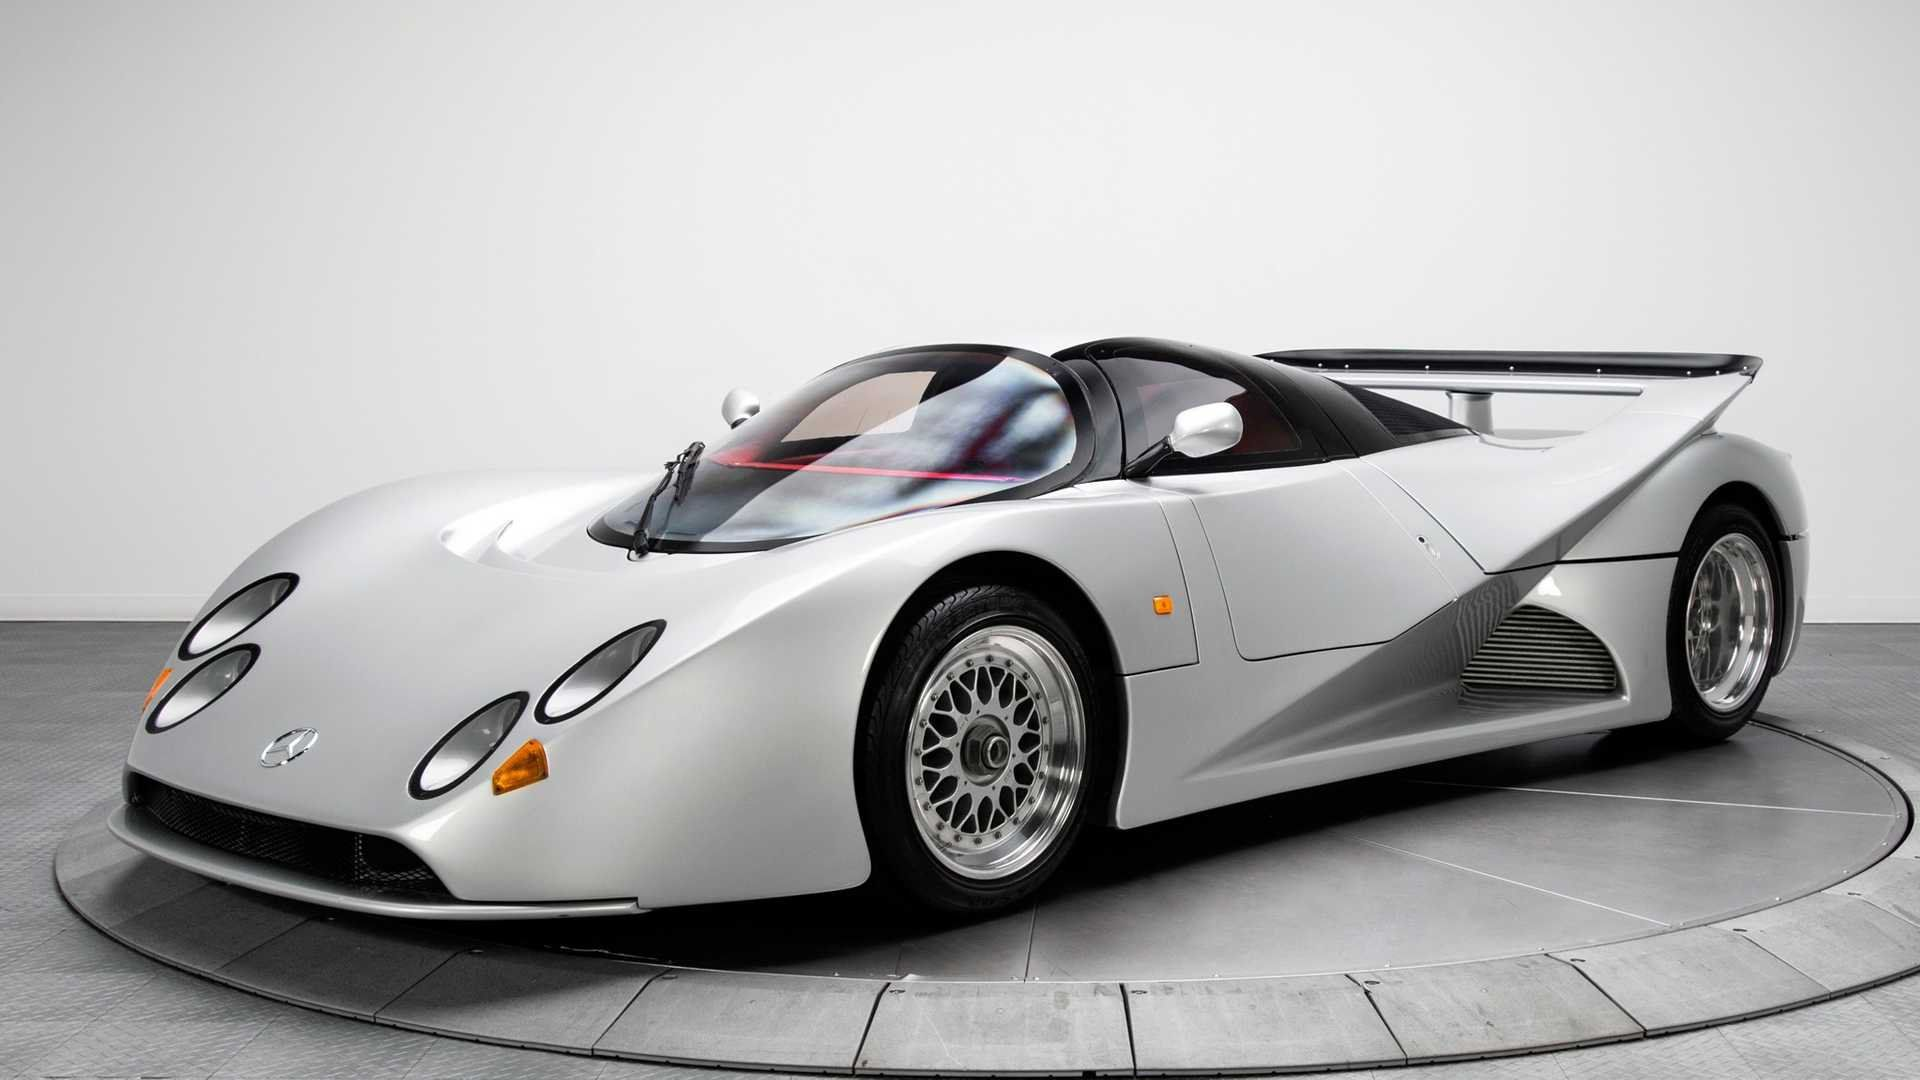 1995 Mercedes Lotec C1000. Only a person crafted. Powered by 1000hp TT Mercedes V8. « astonis... 1